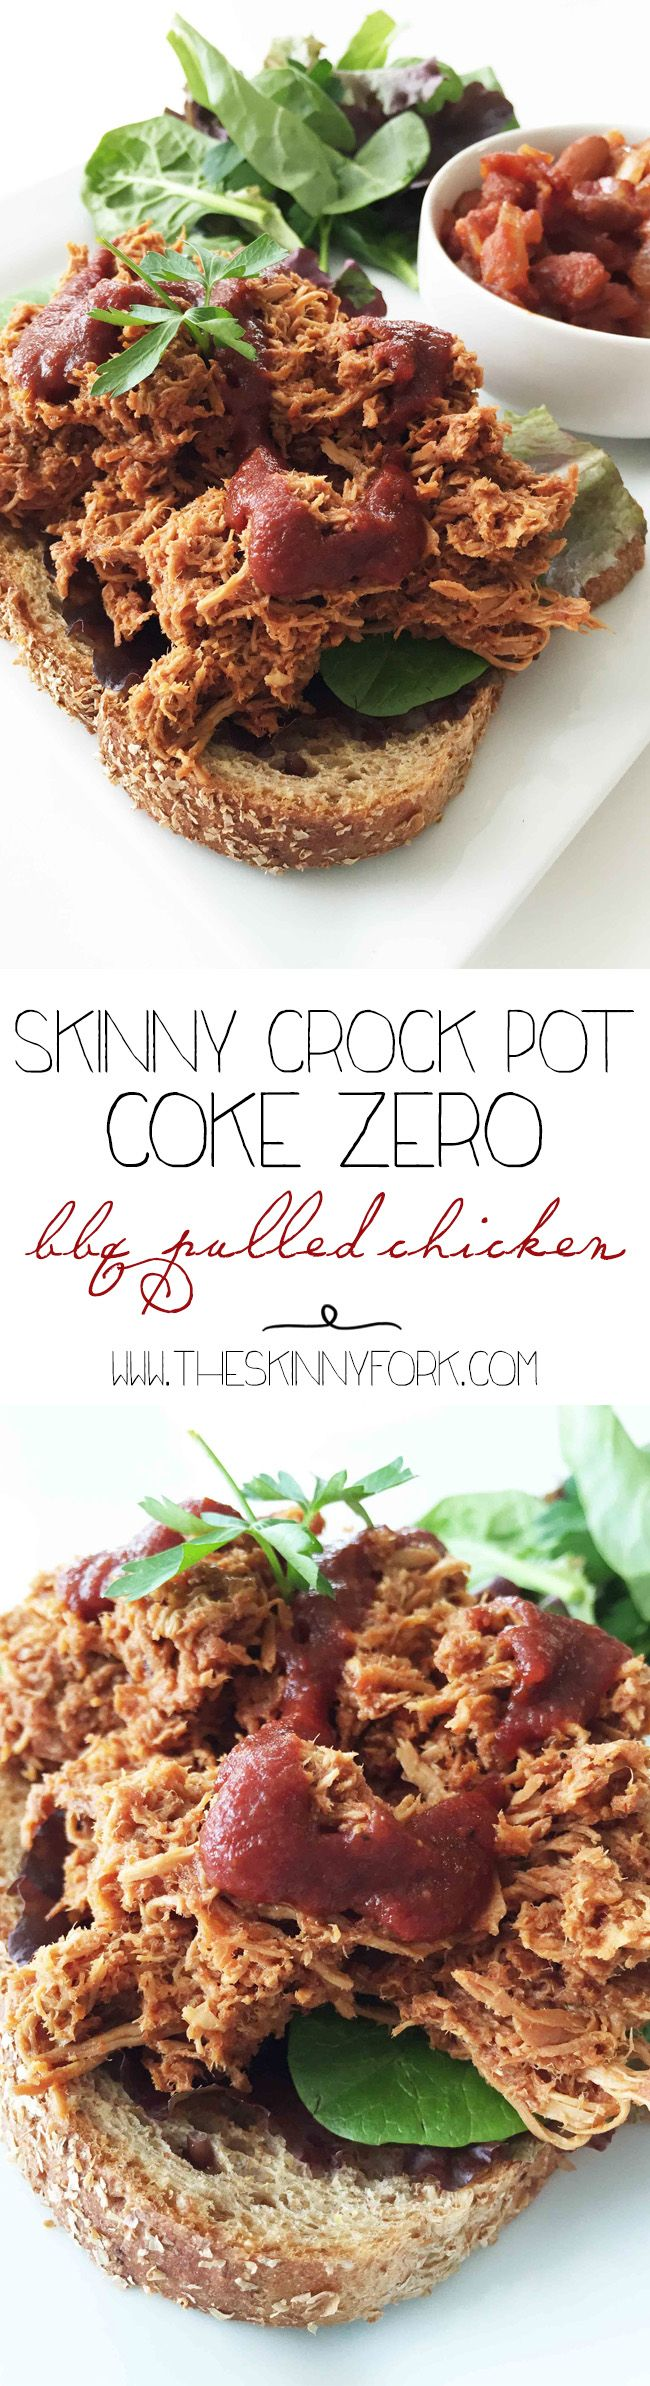 Skinny Crock Pot Coke Zero BBQ Pulled Chicken - A lighter take on a super easy BBQ chicken! #FinalFourPack #Ad